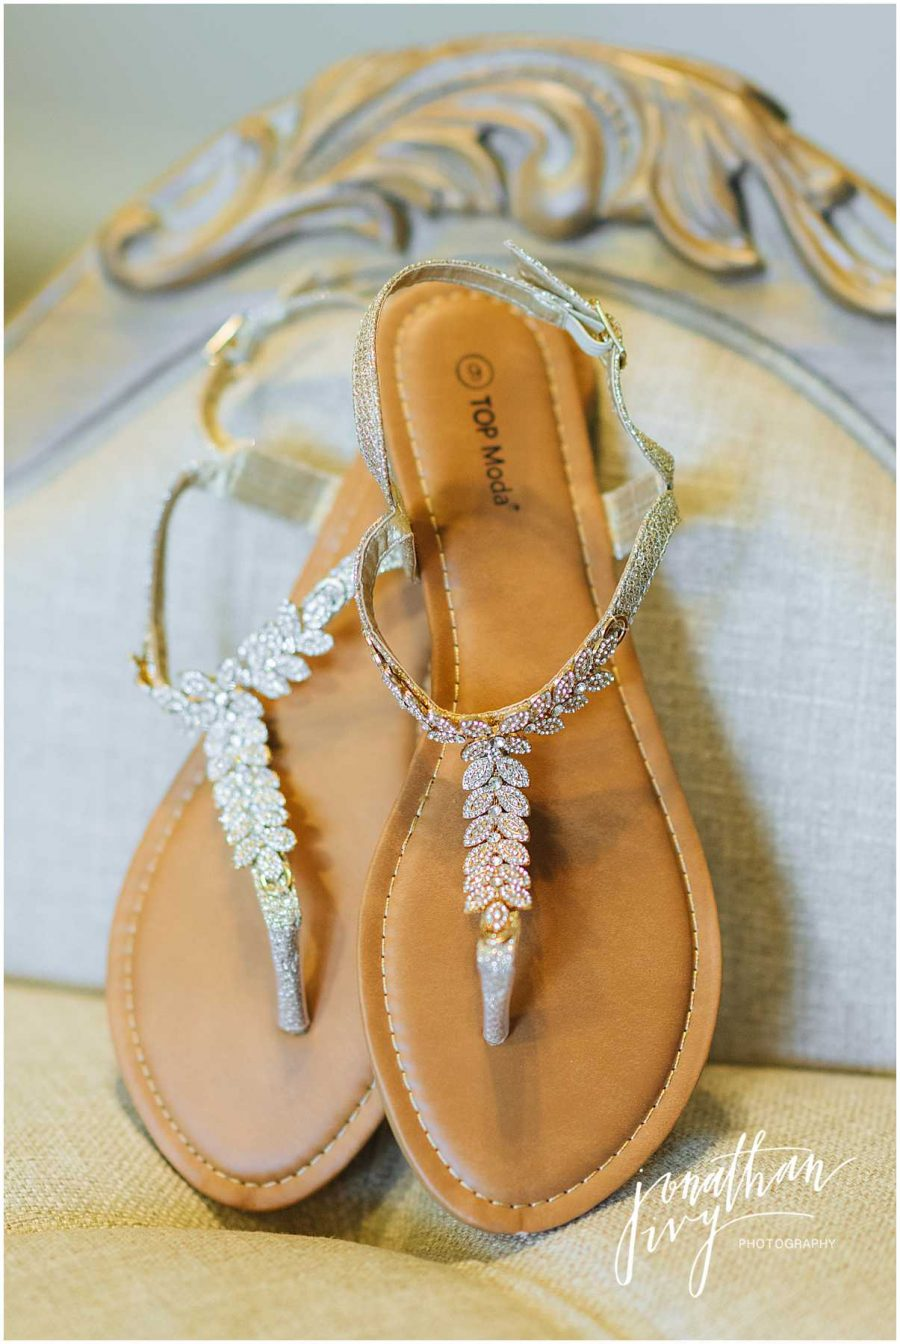 Bridal Sandal Shoes for Wedding Day